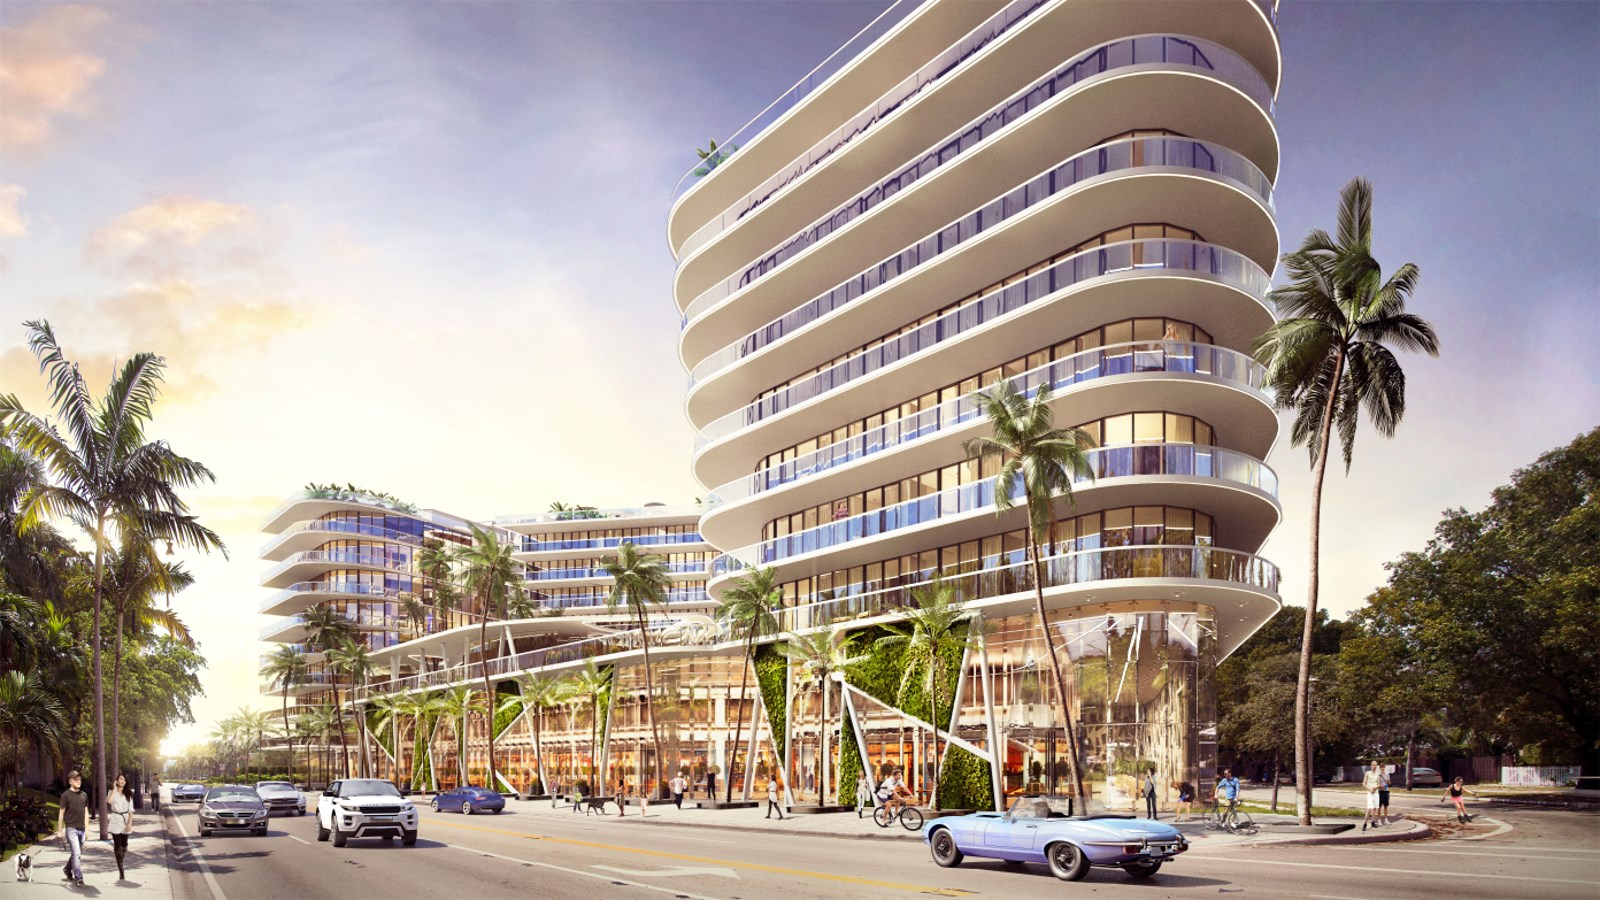 Biscayne Blvd. North View.jpg